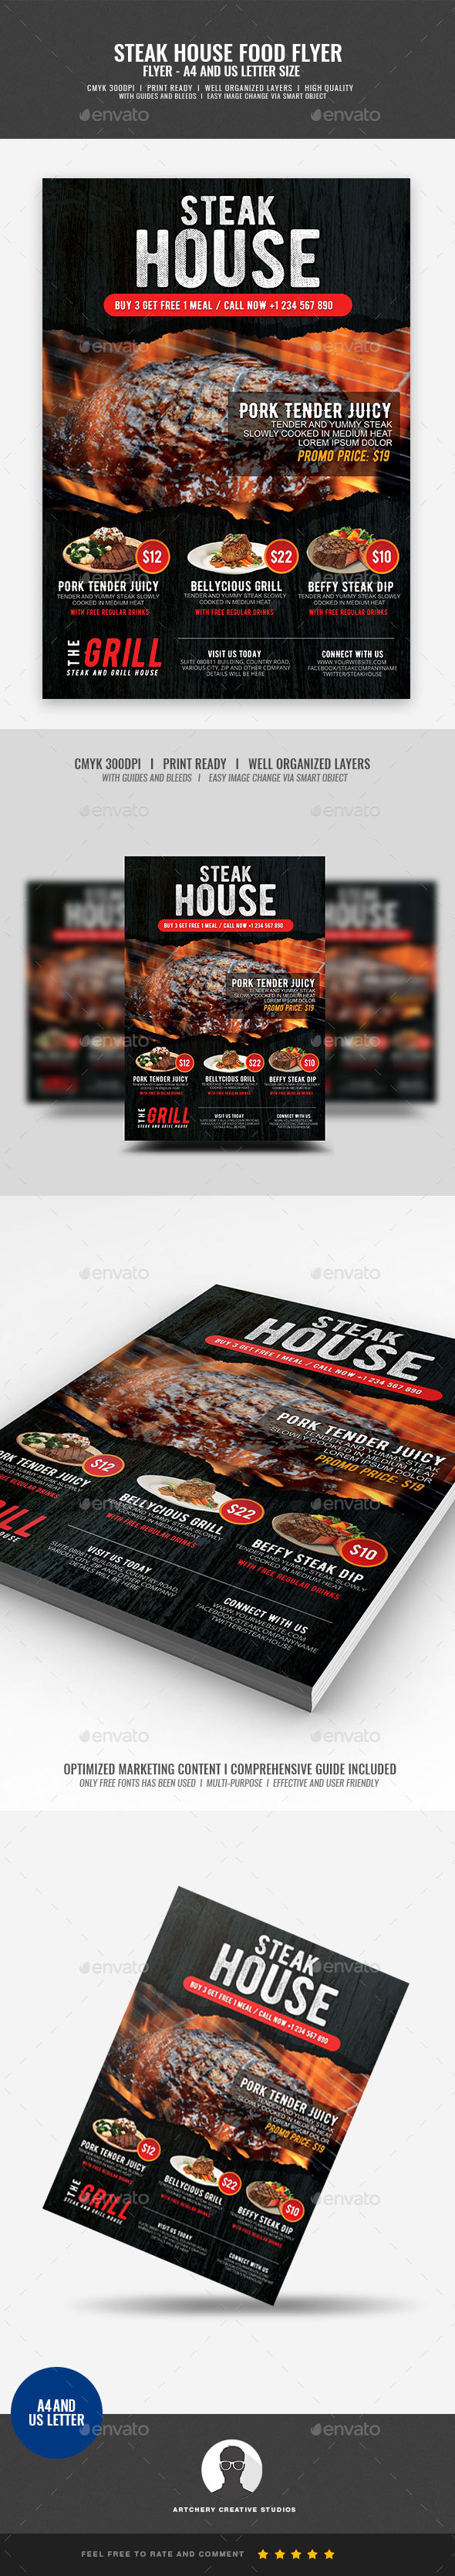 Grill Steak Flyer - Restaurant Flyers